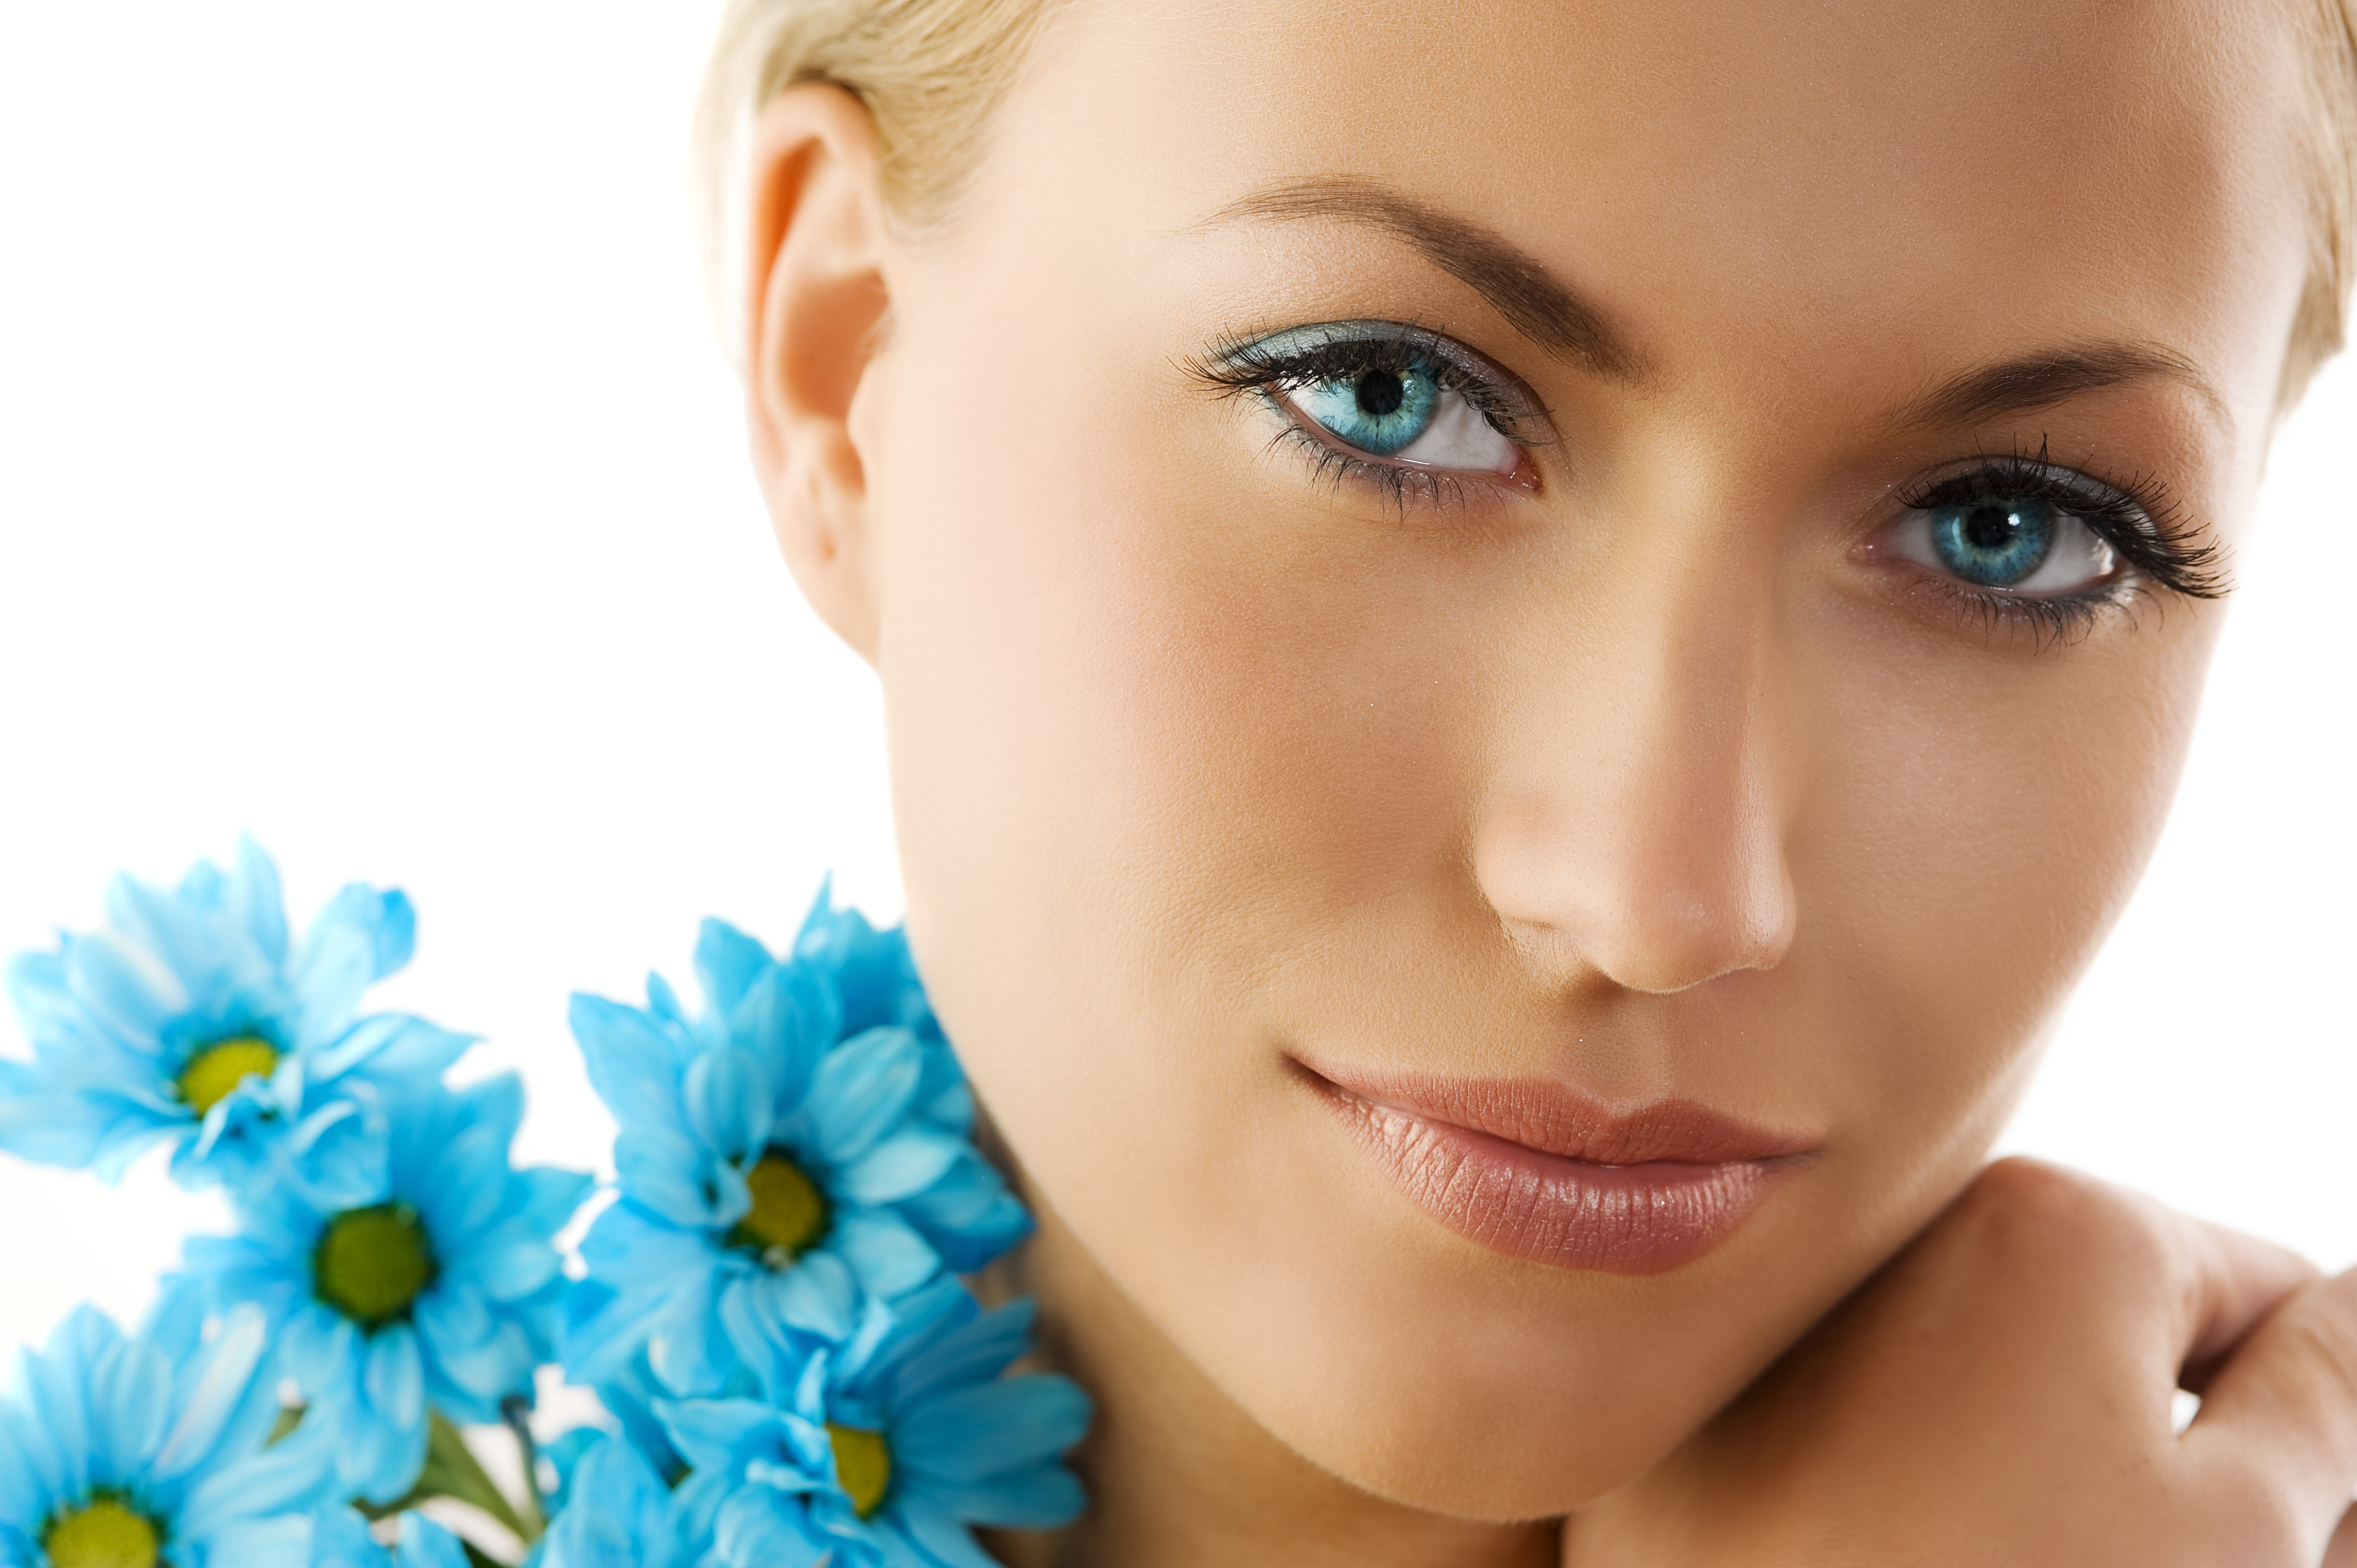 Home skin renewal systems beautiful skin starts here with our facial services menu we offer a wide variety of luxurious skin care options to meet any needs xflitez Images